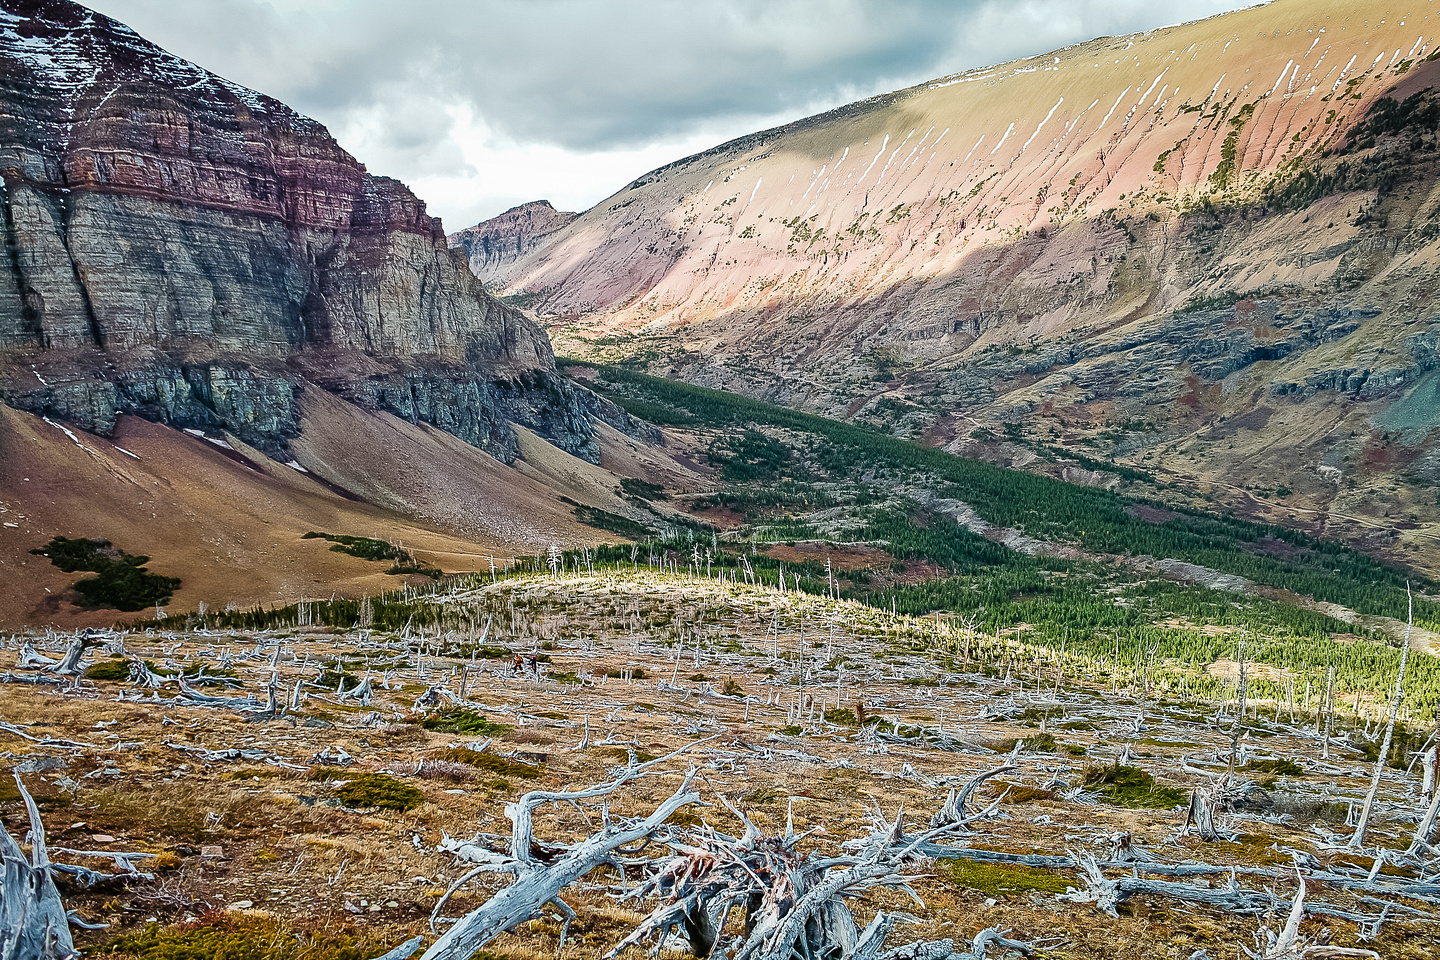 Very interesting terrain with soaring cliffs, dead trees and extremely colorful rock.